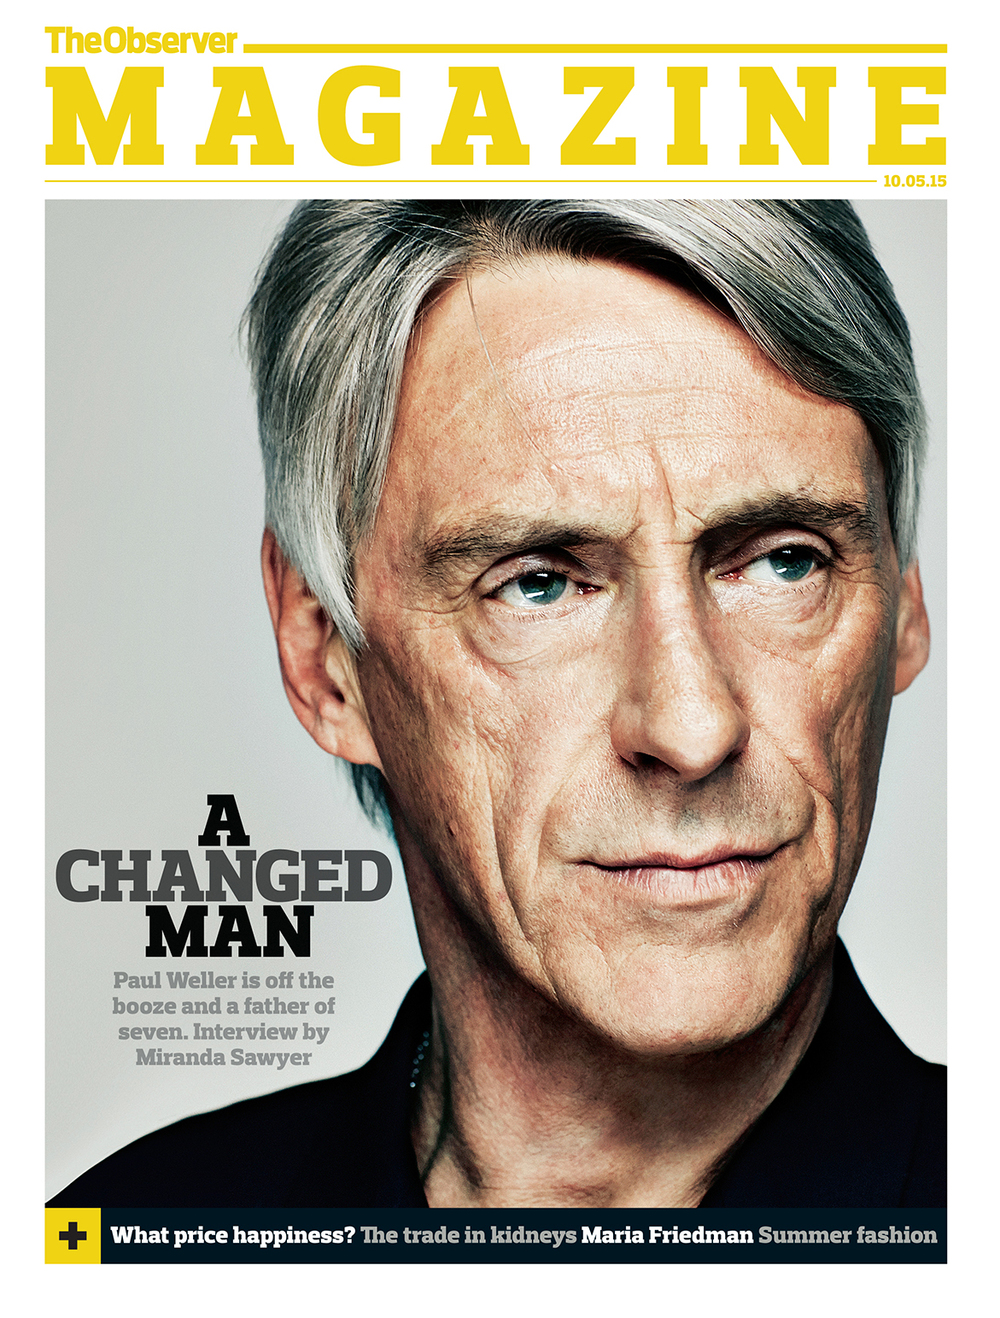 Paul Weller, The Observer Magazine